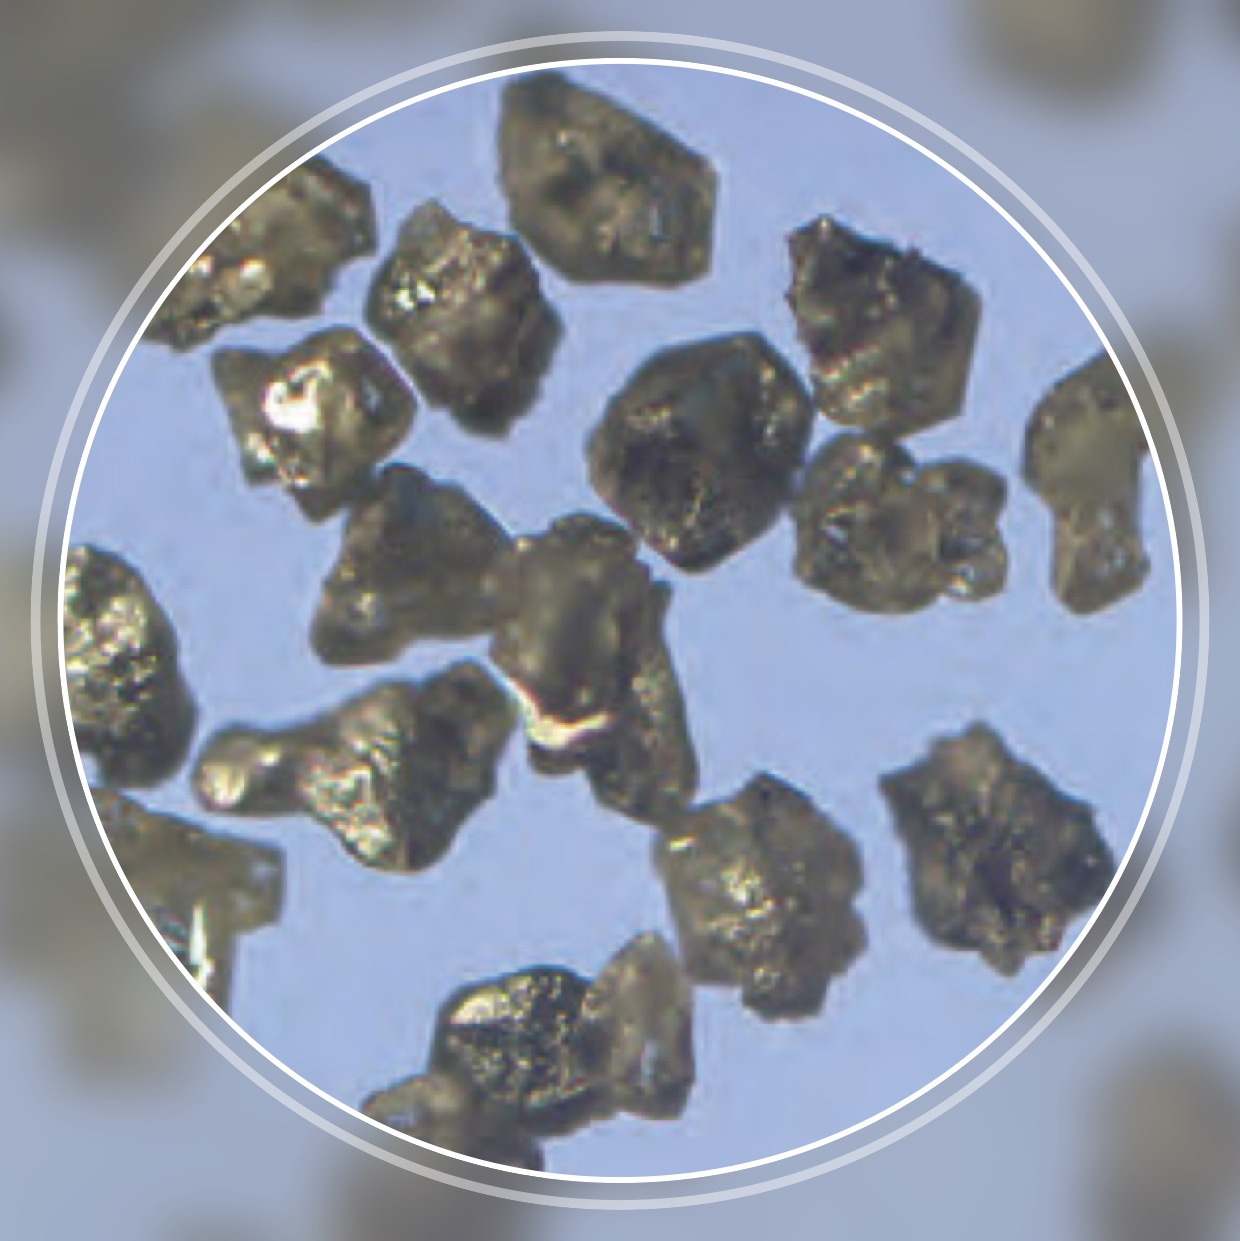 SND-R05 Highest Friability Resin Bond Diamond Particles For High Precision Grinding Applications